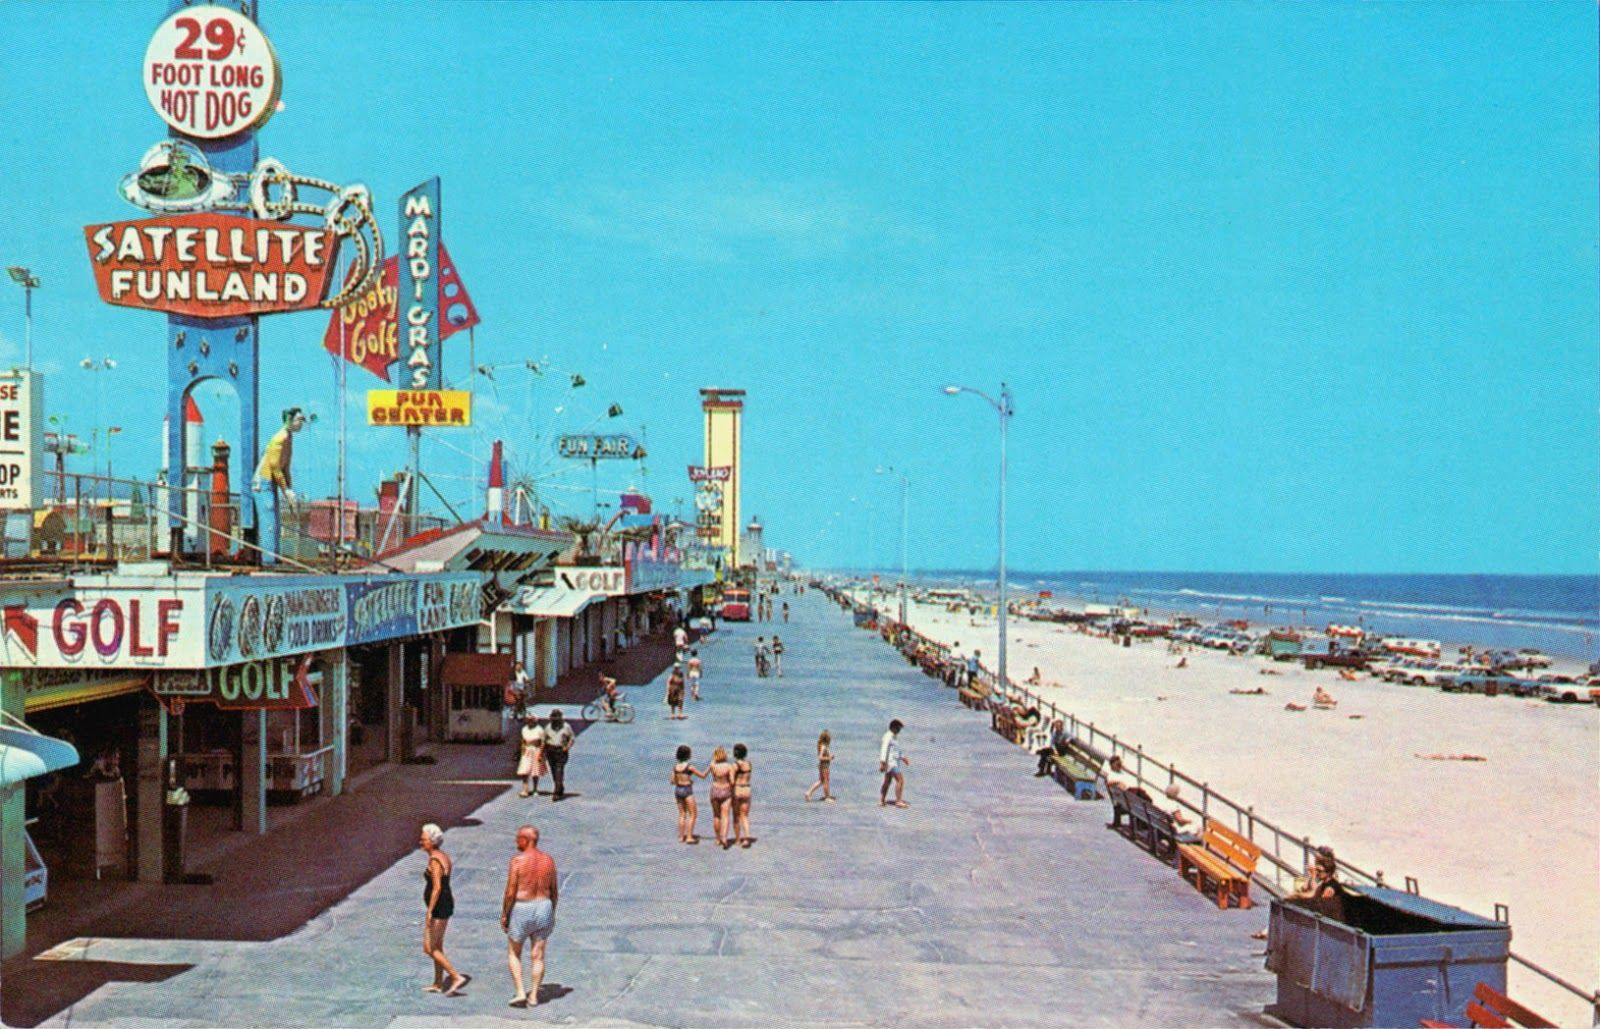 Daytona Beach 1960s We Went Here Every Summer When I Was Young Loved The Boardwalk And Pier But Momma Just Wanted To Lay Out By Pool